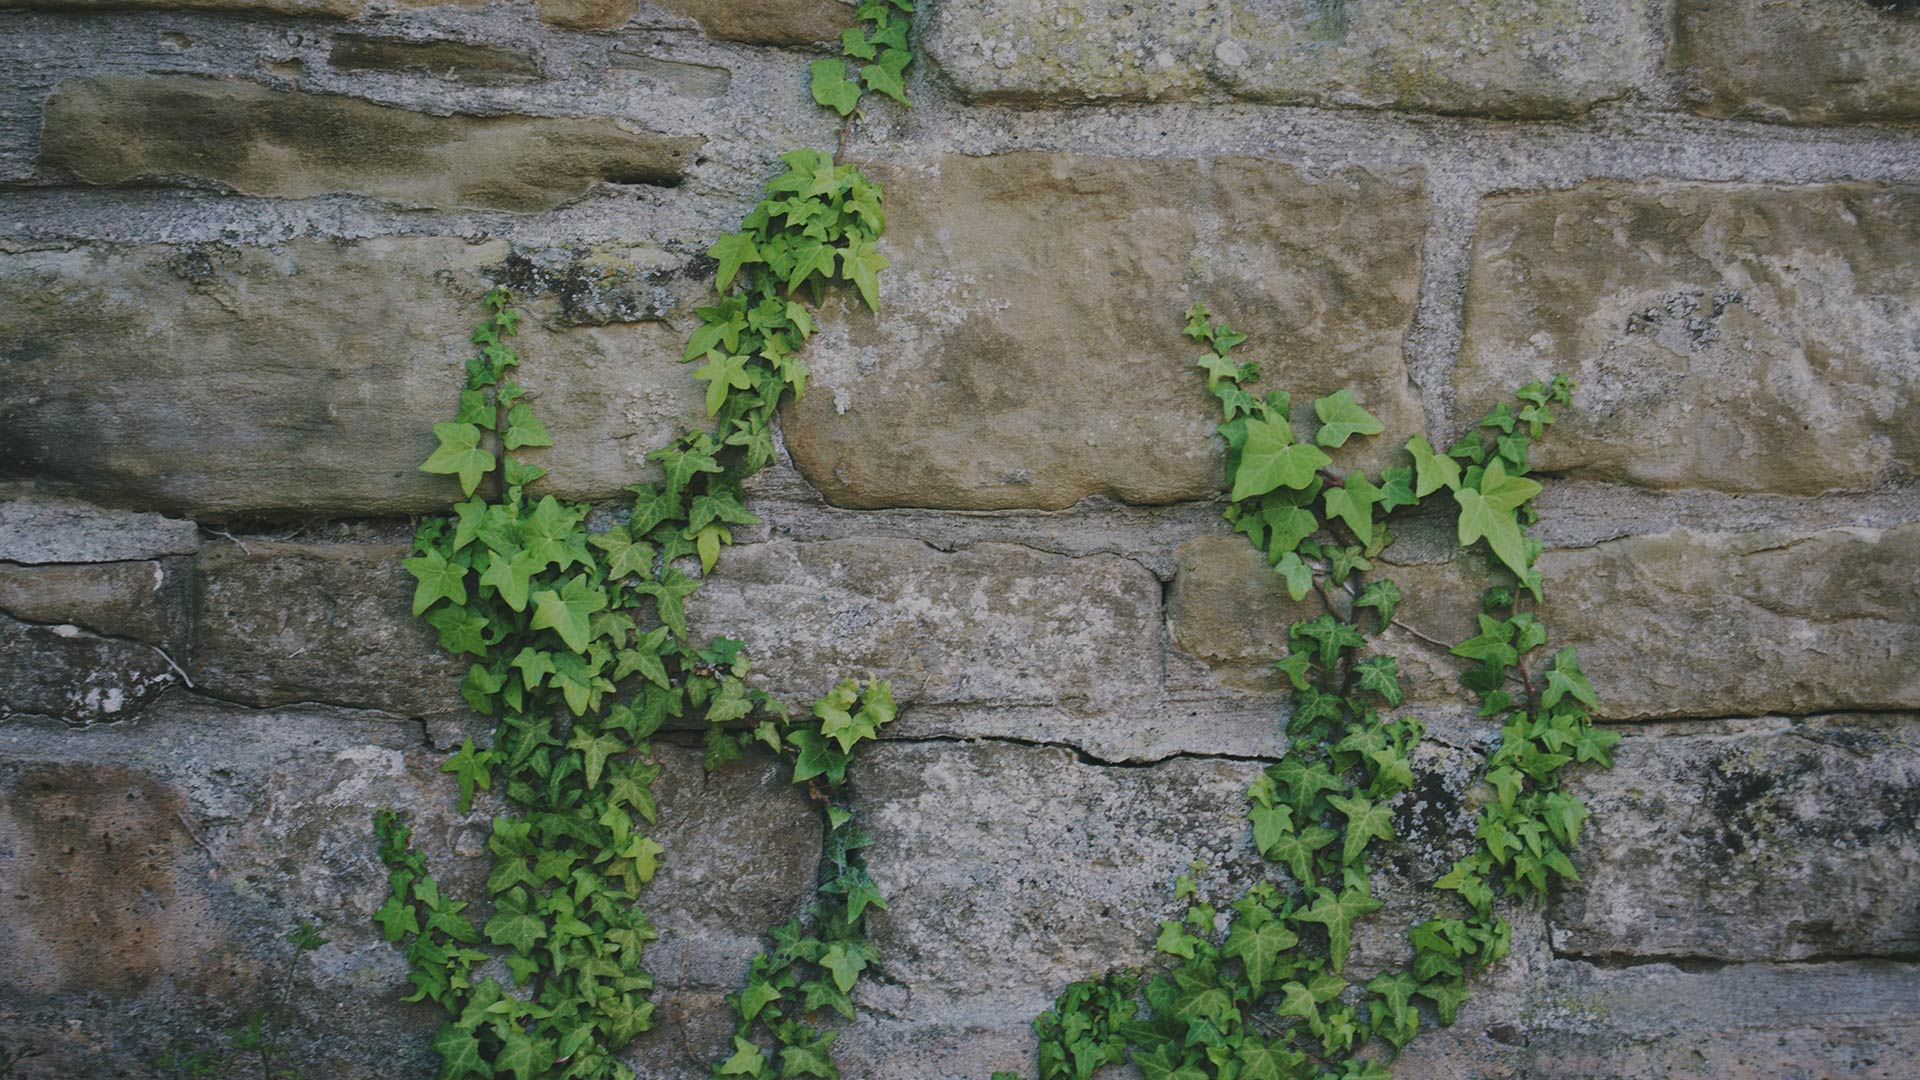 Background Photo - Stone Wall with Ivy